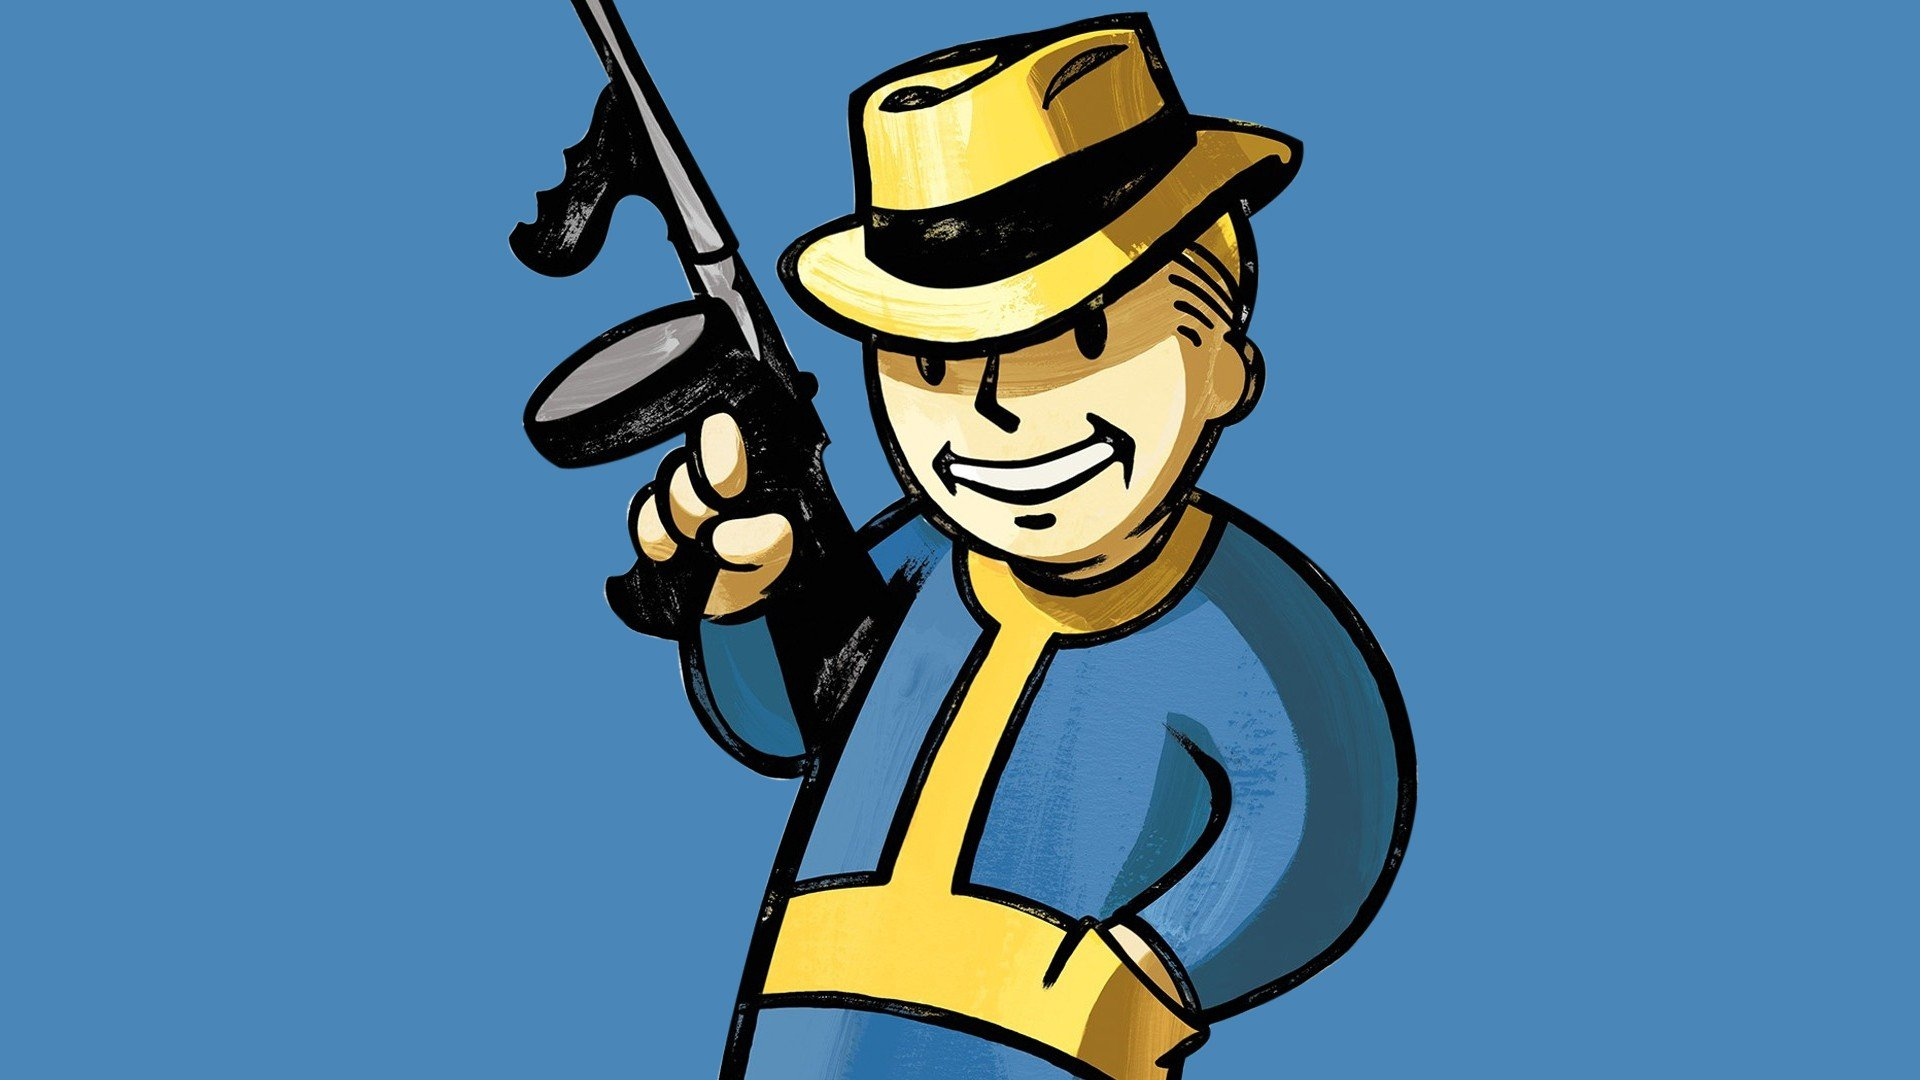 Fallout clipart pitboy Fallout games Bethesda games